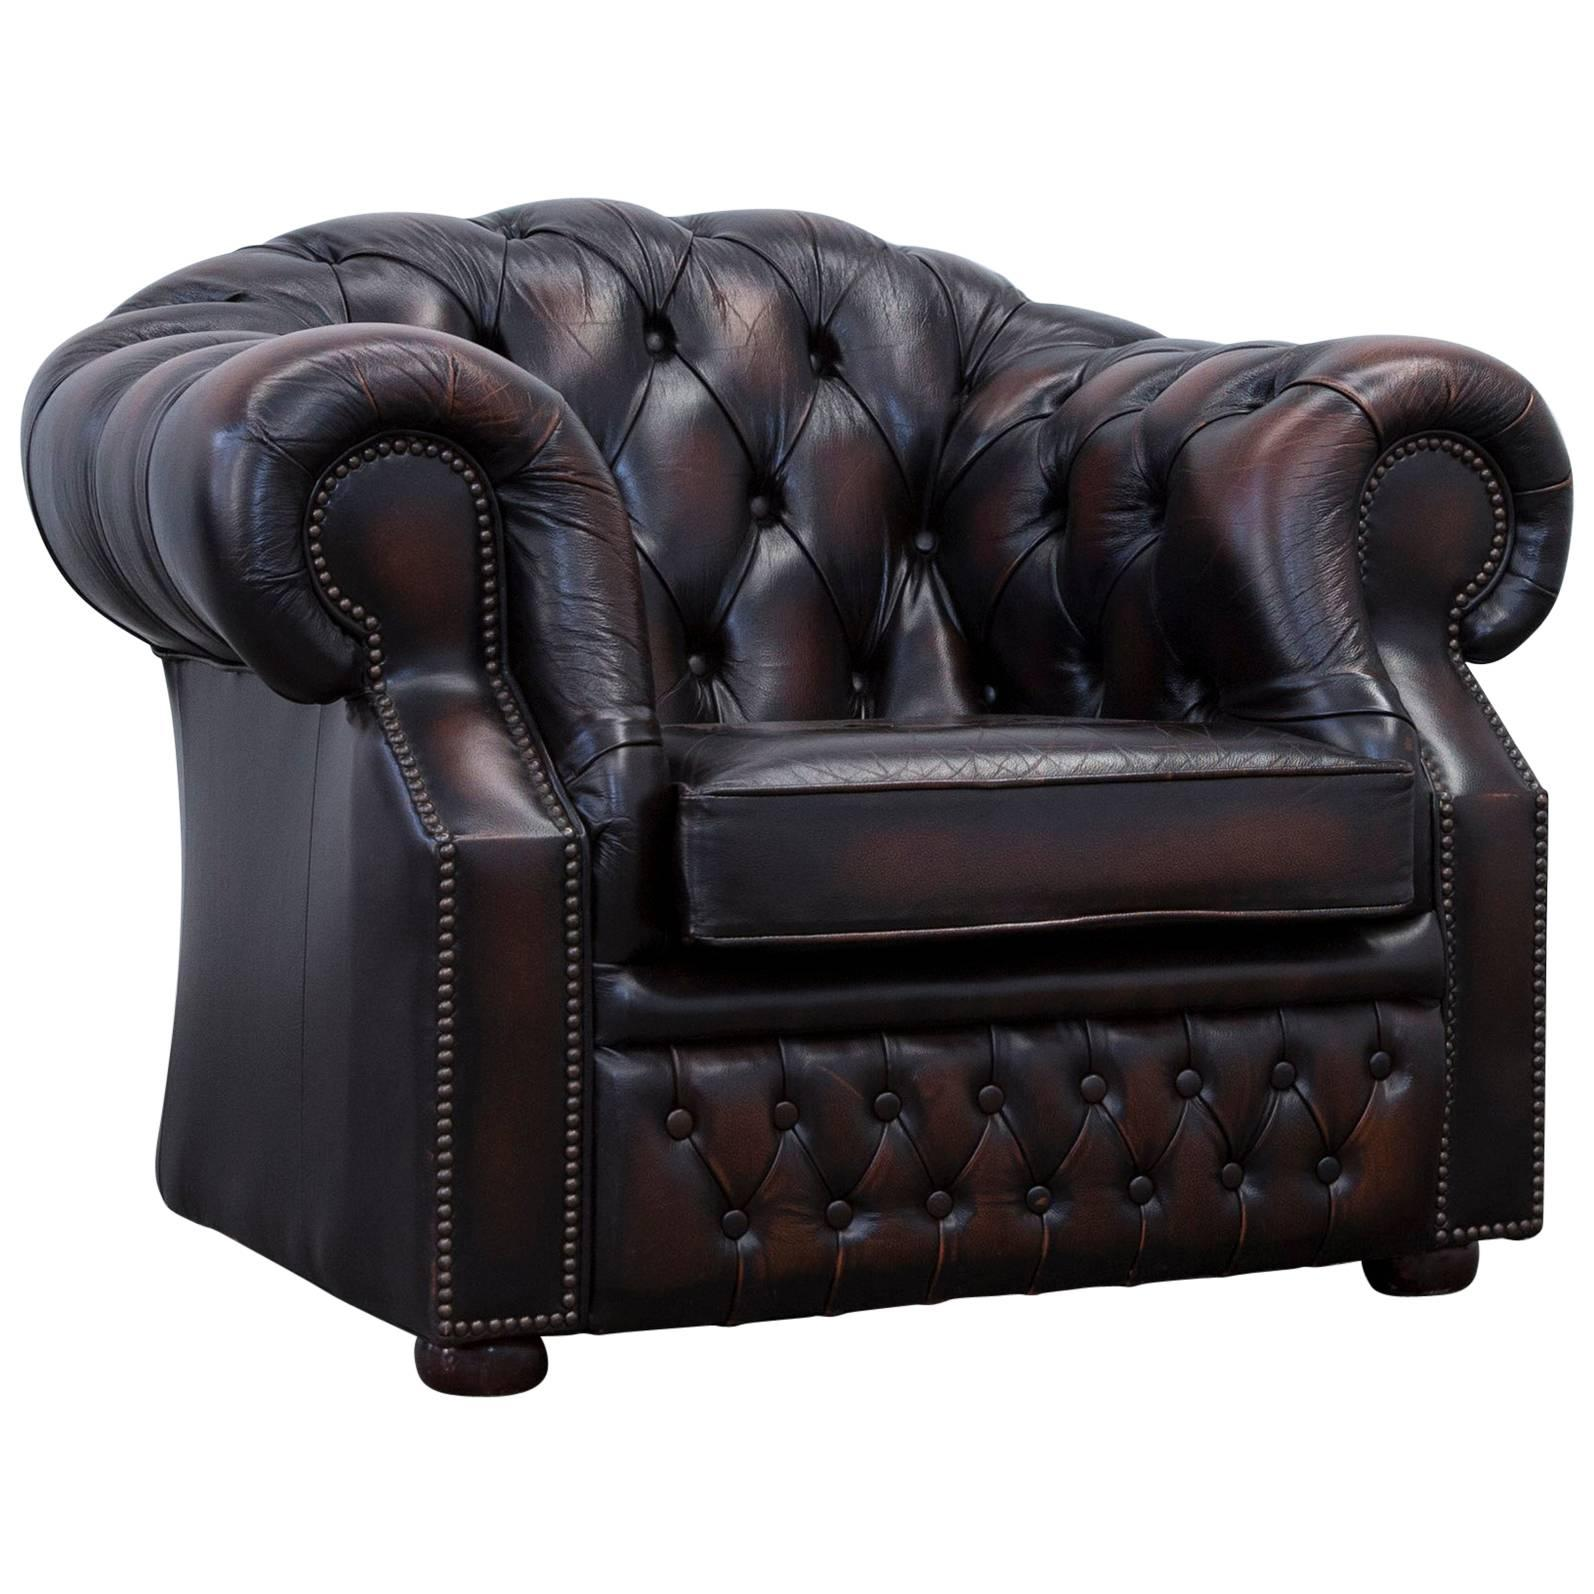 Chesterfield Armchair Leather Brown One Seat Couch Vintage Retro For Sale